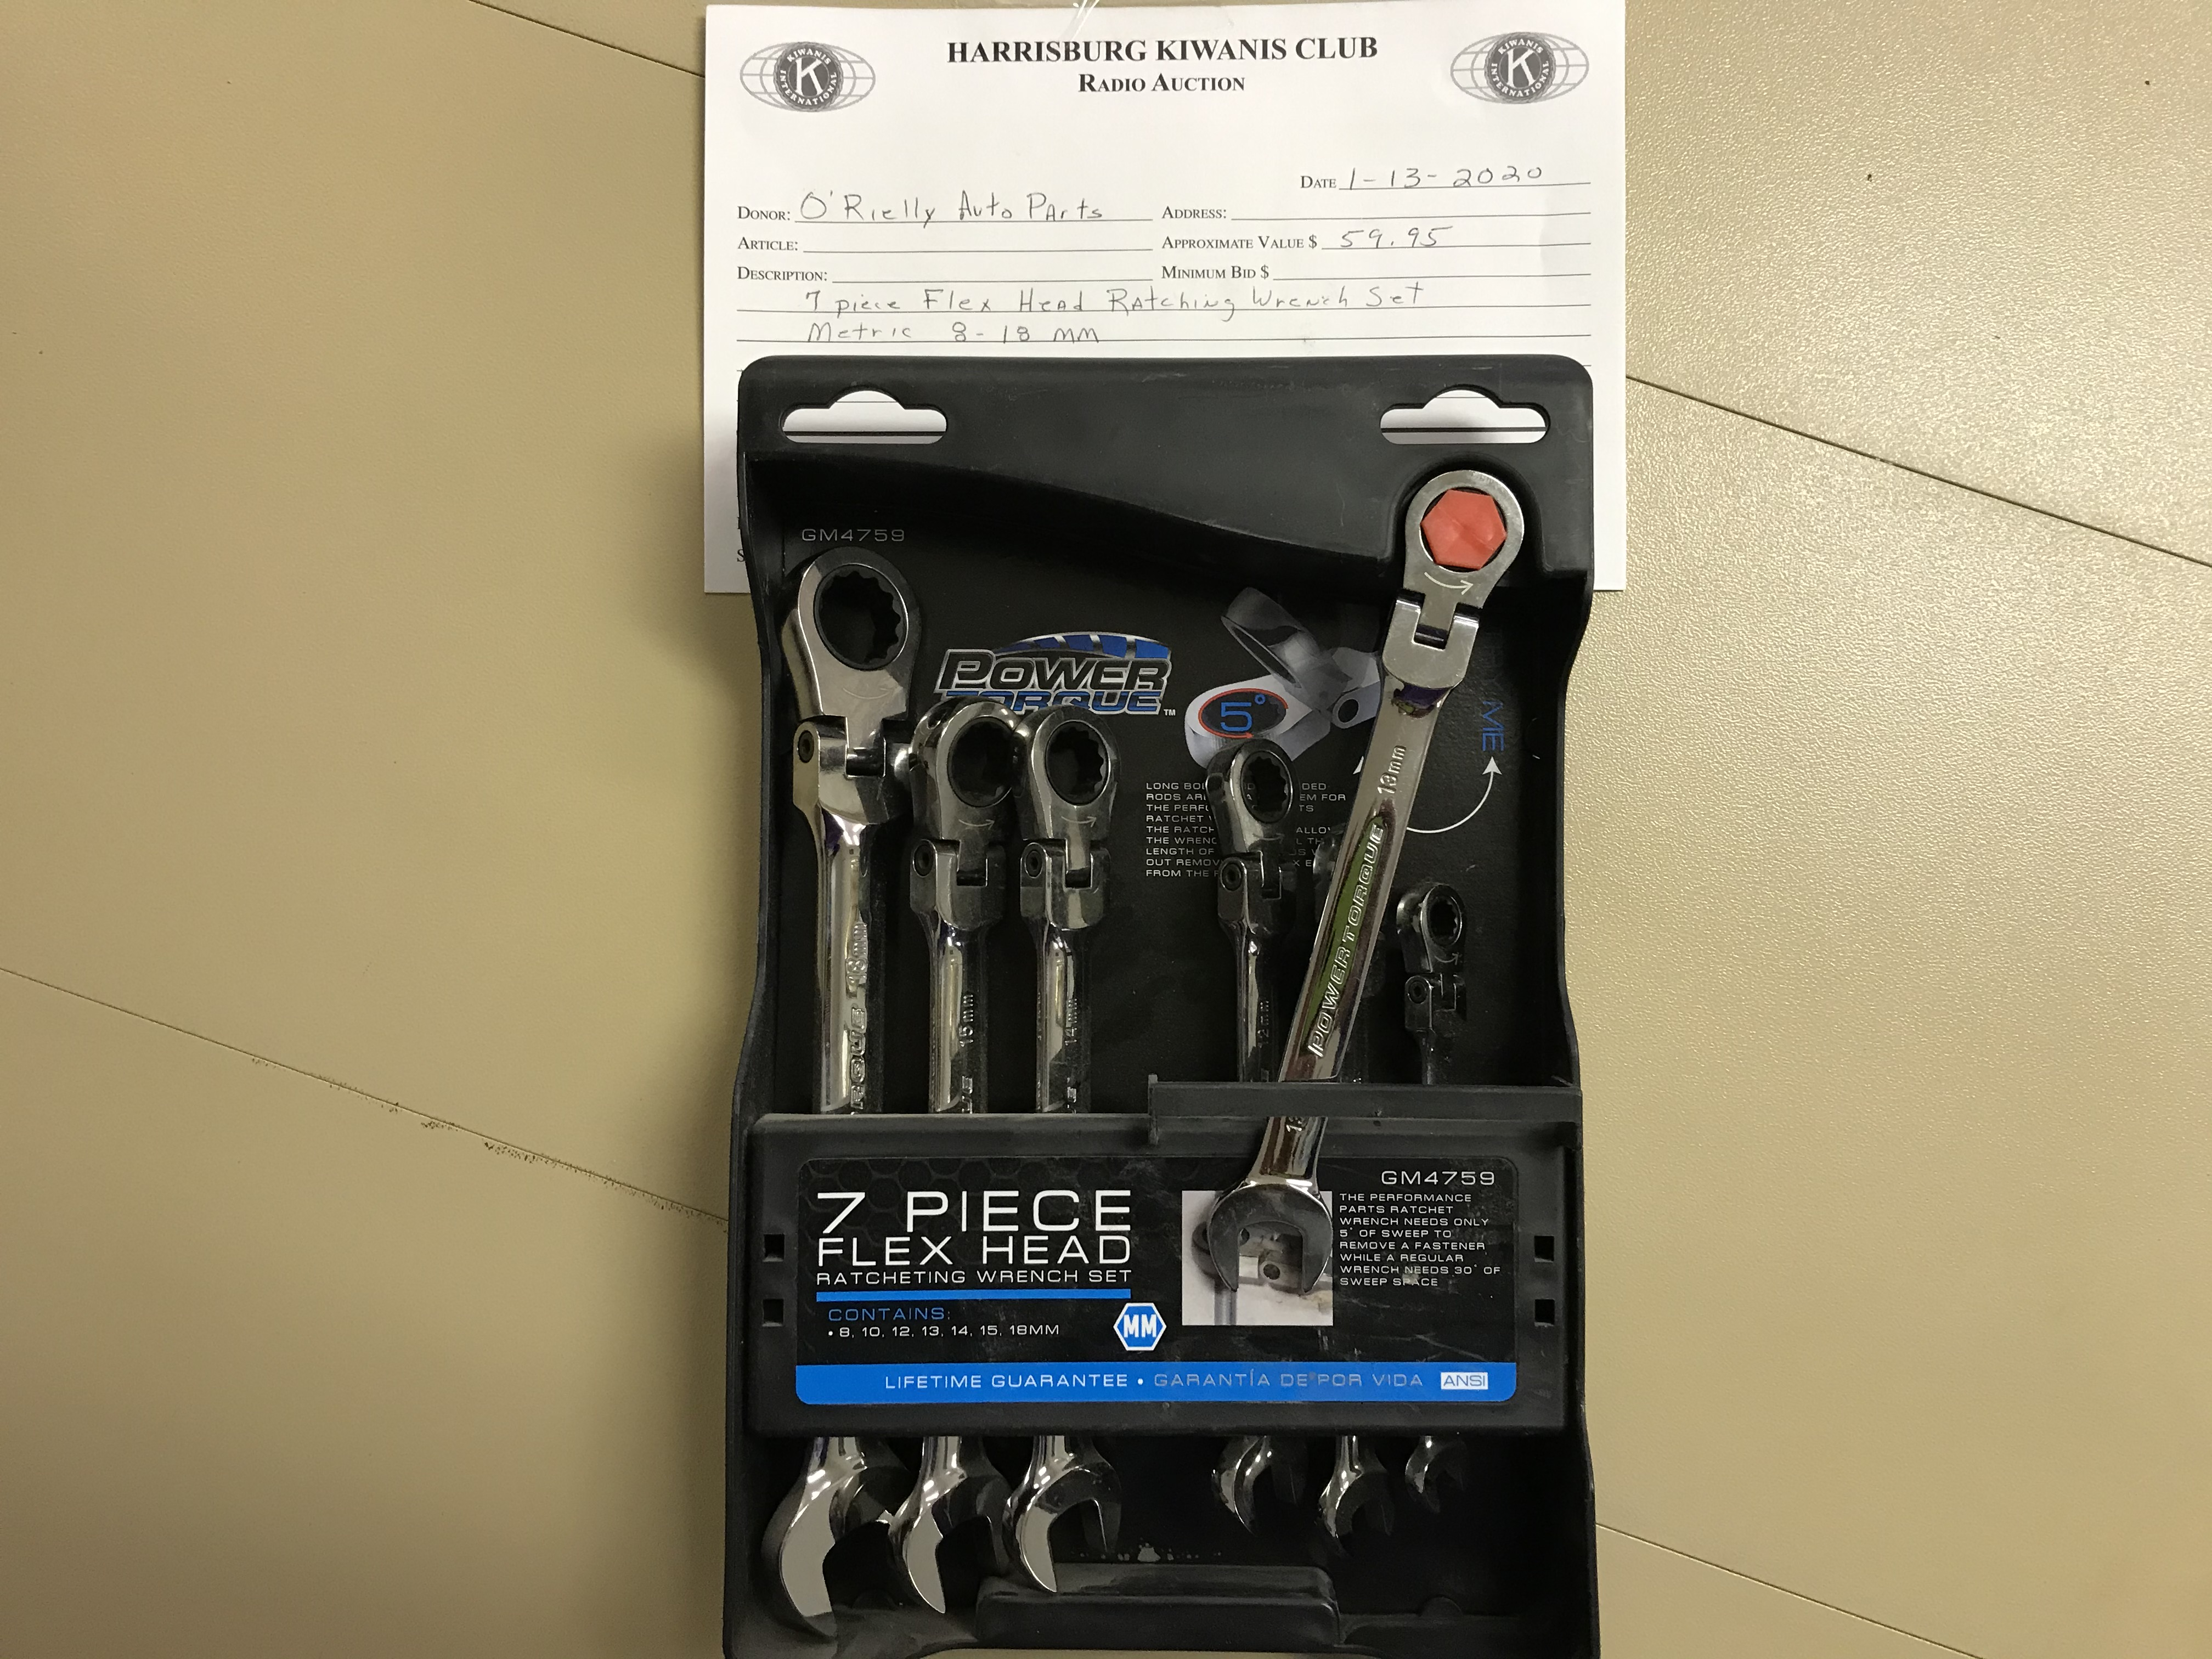 Item 433 - O'Reilly Auto Parts 7 Pc Flex Head Ratcheting Wrench Set (Metric)